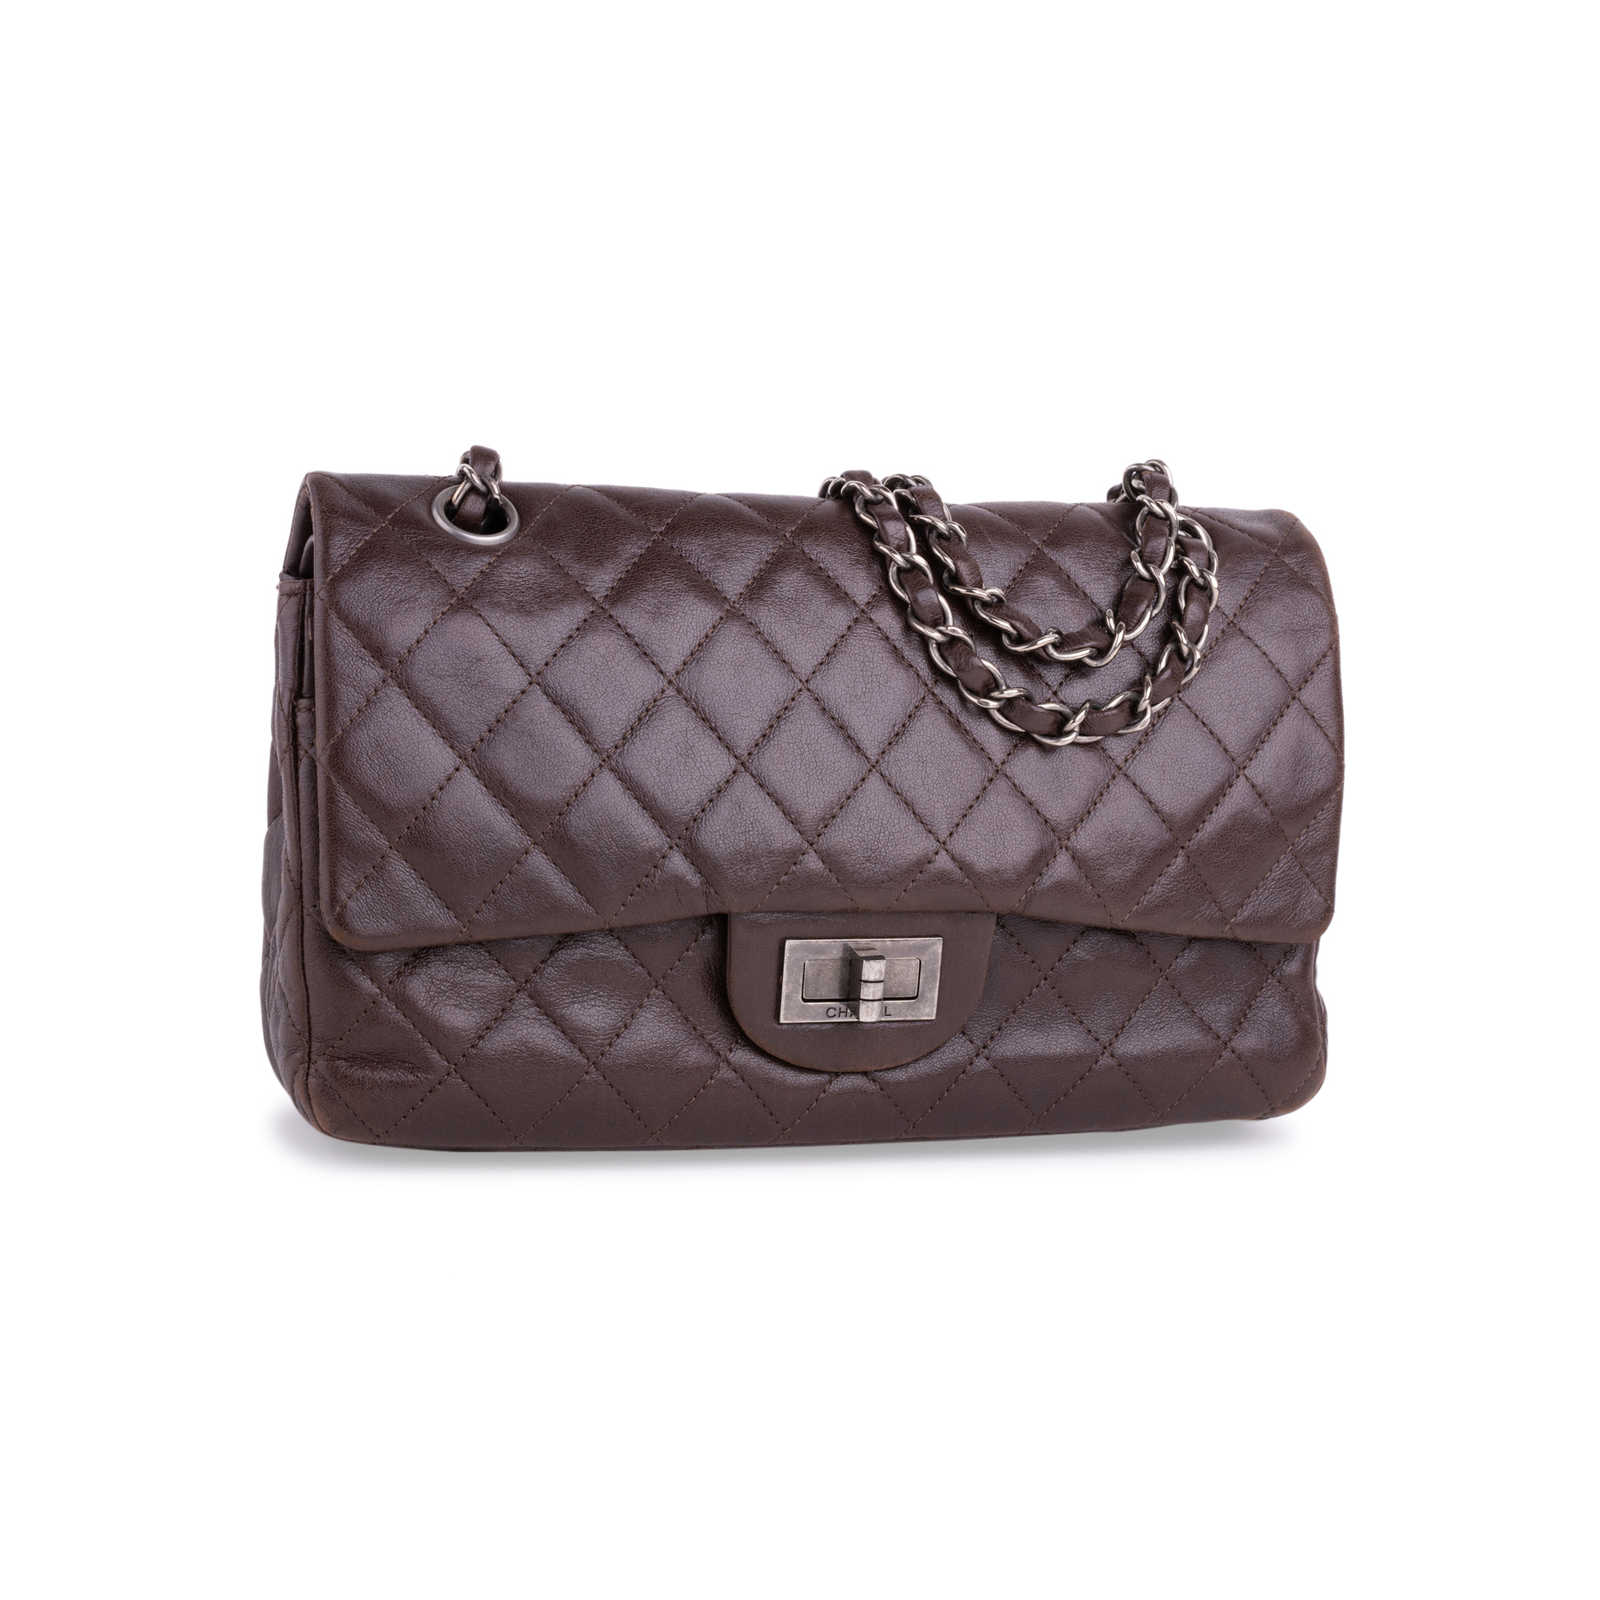 ... Authentic Second Hand Chanel Hybrid Reissue Bag (PSS-636-00001) -  Thumbnail ... 02f275688adf8